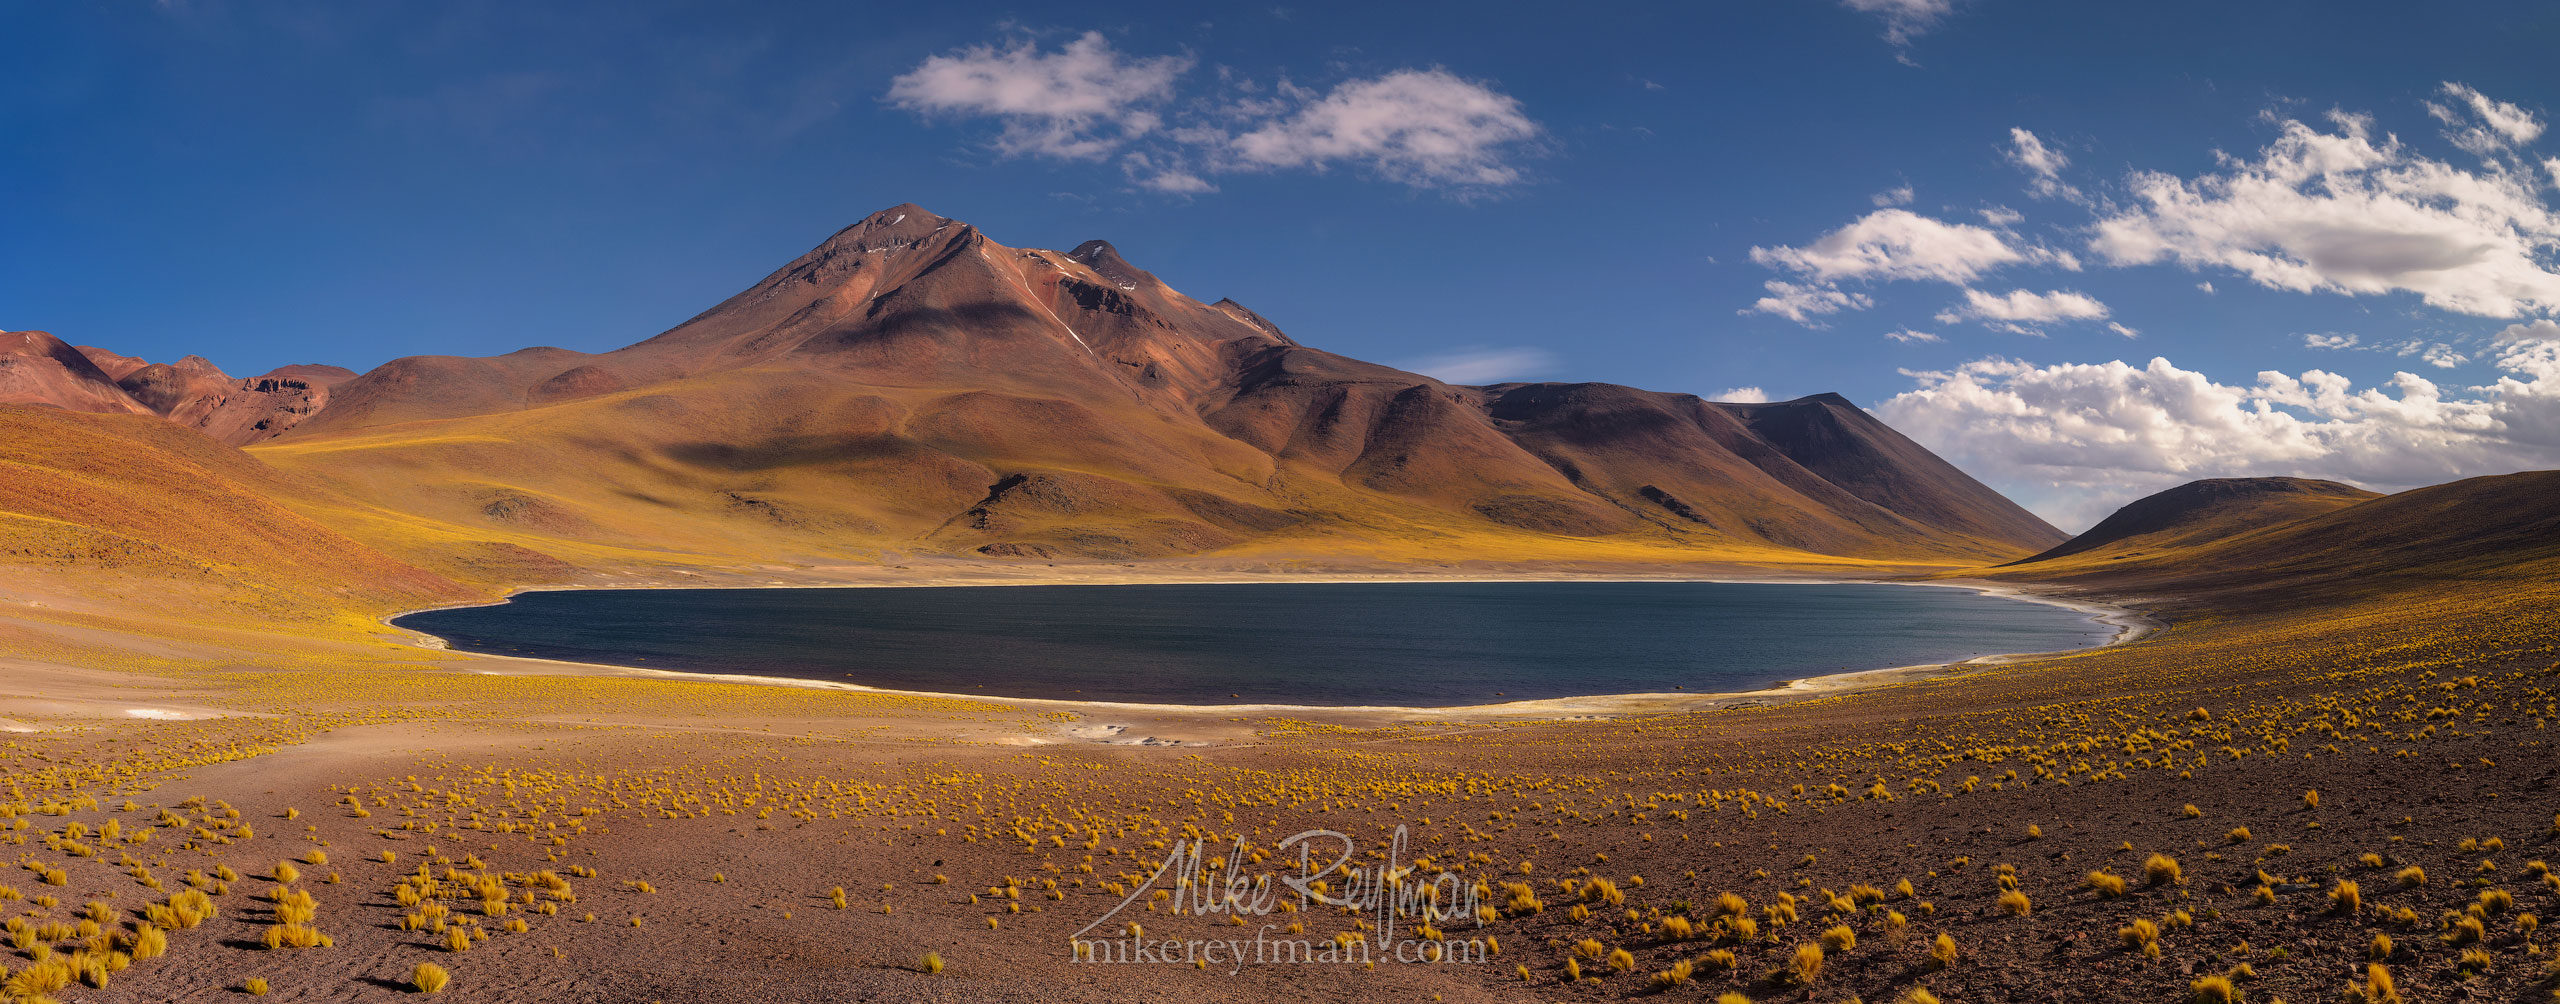 Laguna Miscanti and Miñiques volcano. San Pedro de Atacama, Atacama Desert, Antofagasta Region, Chile AA1-D1D9636_Pano_1x2.55 - Atacama and Altiplano. The Driest Desert and The High Plain - Mike Reyfman Photography